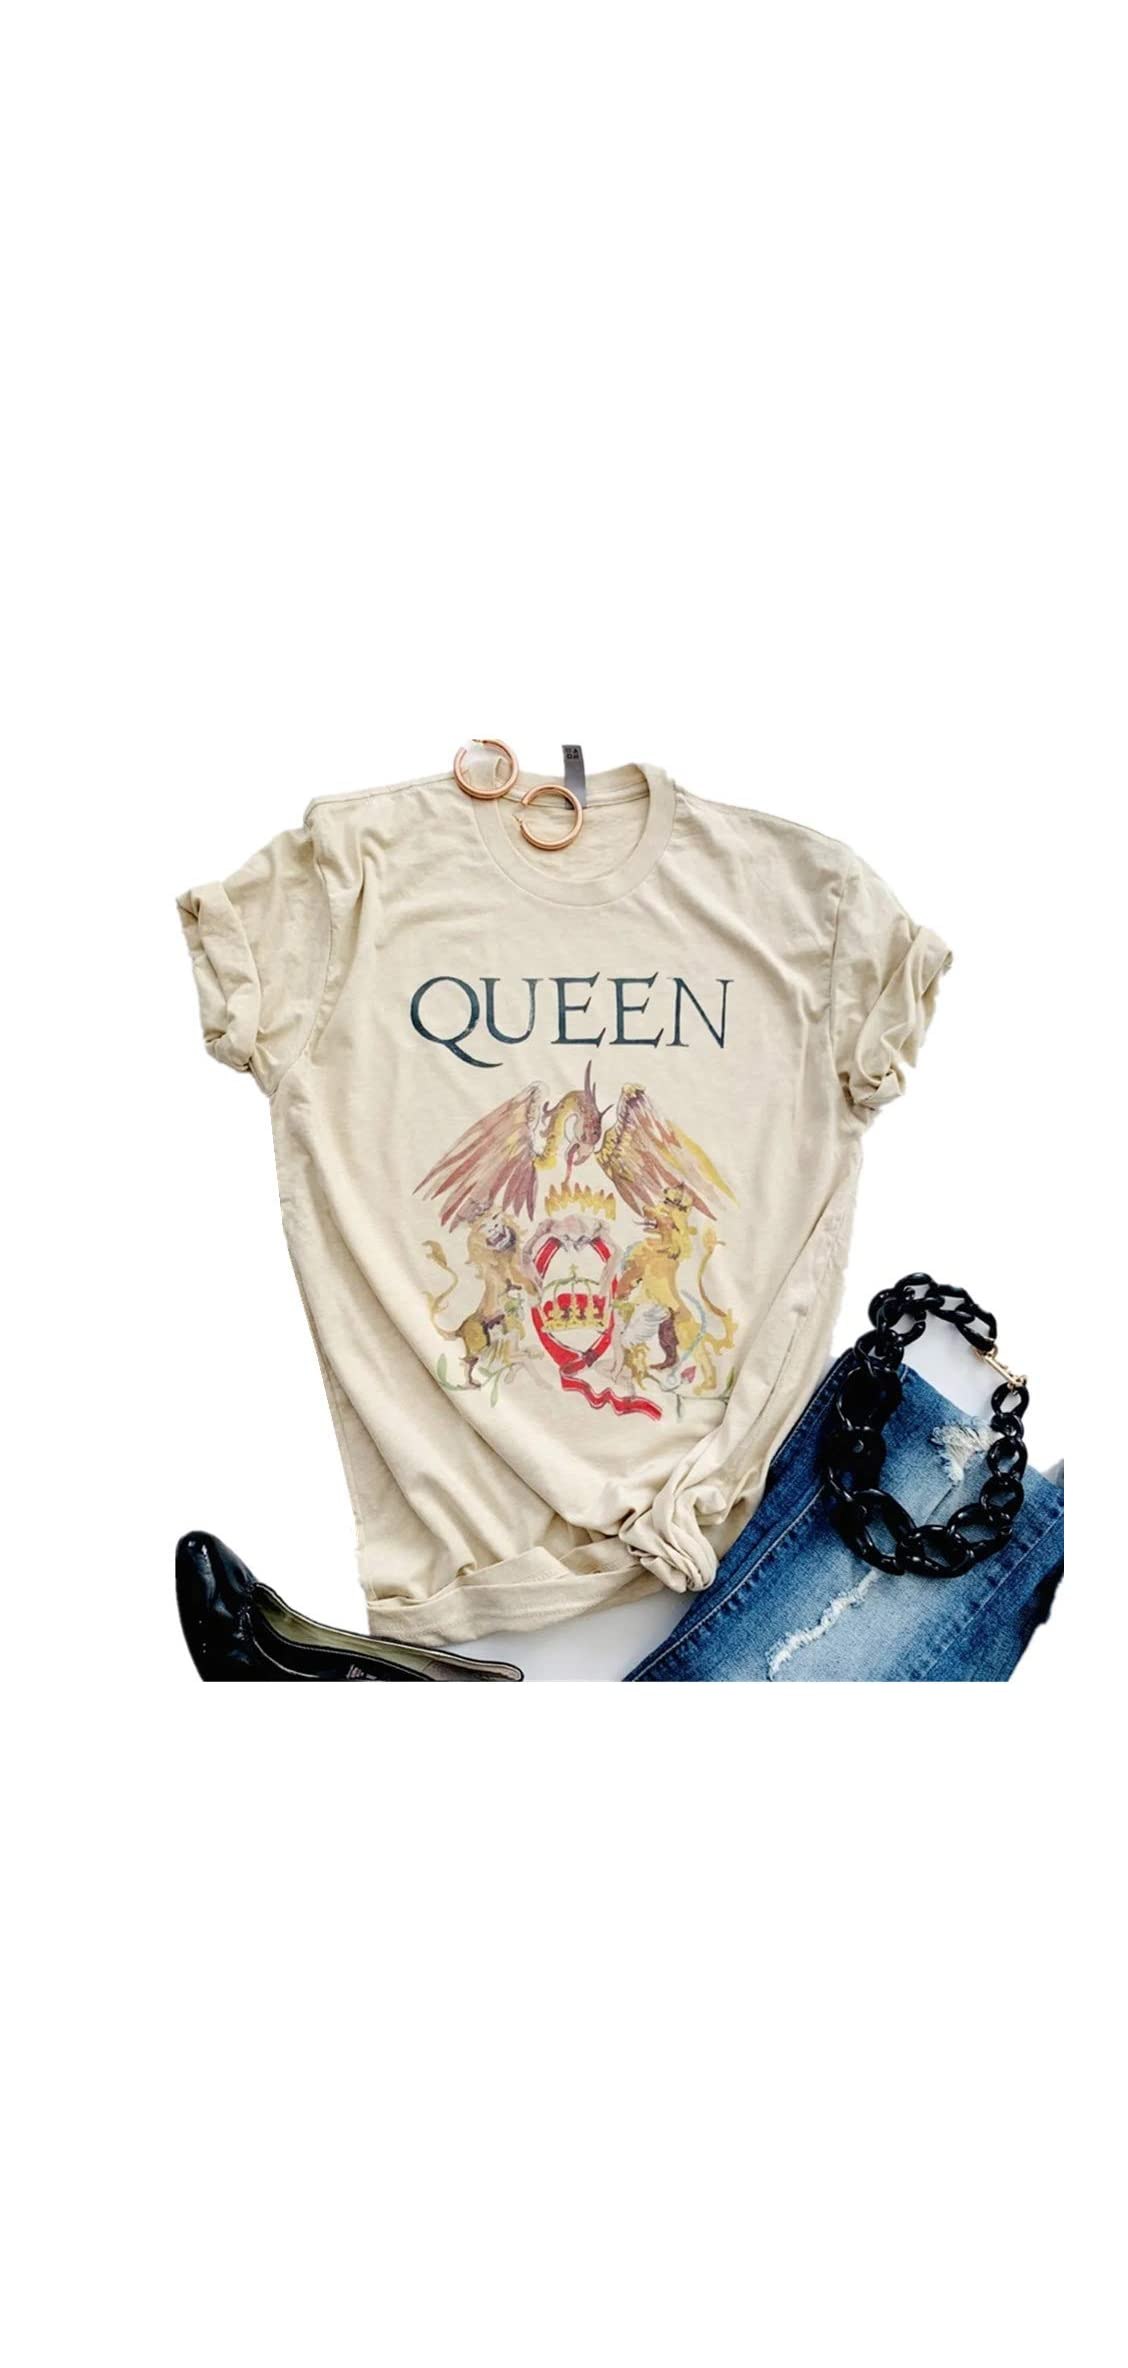 Womens Vintage Queen Shirt Summer Cute Short Sleeve Tees